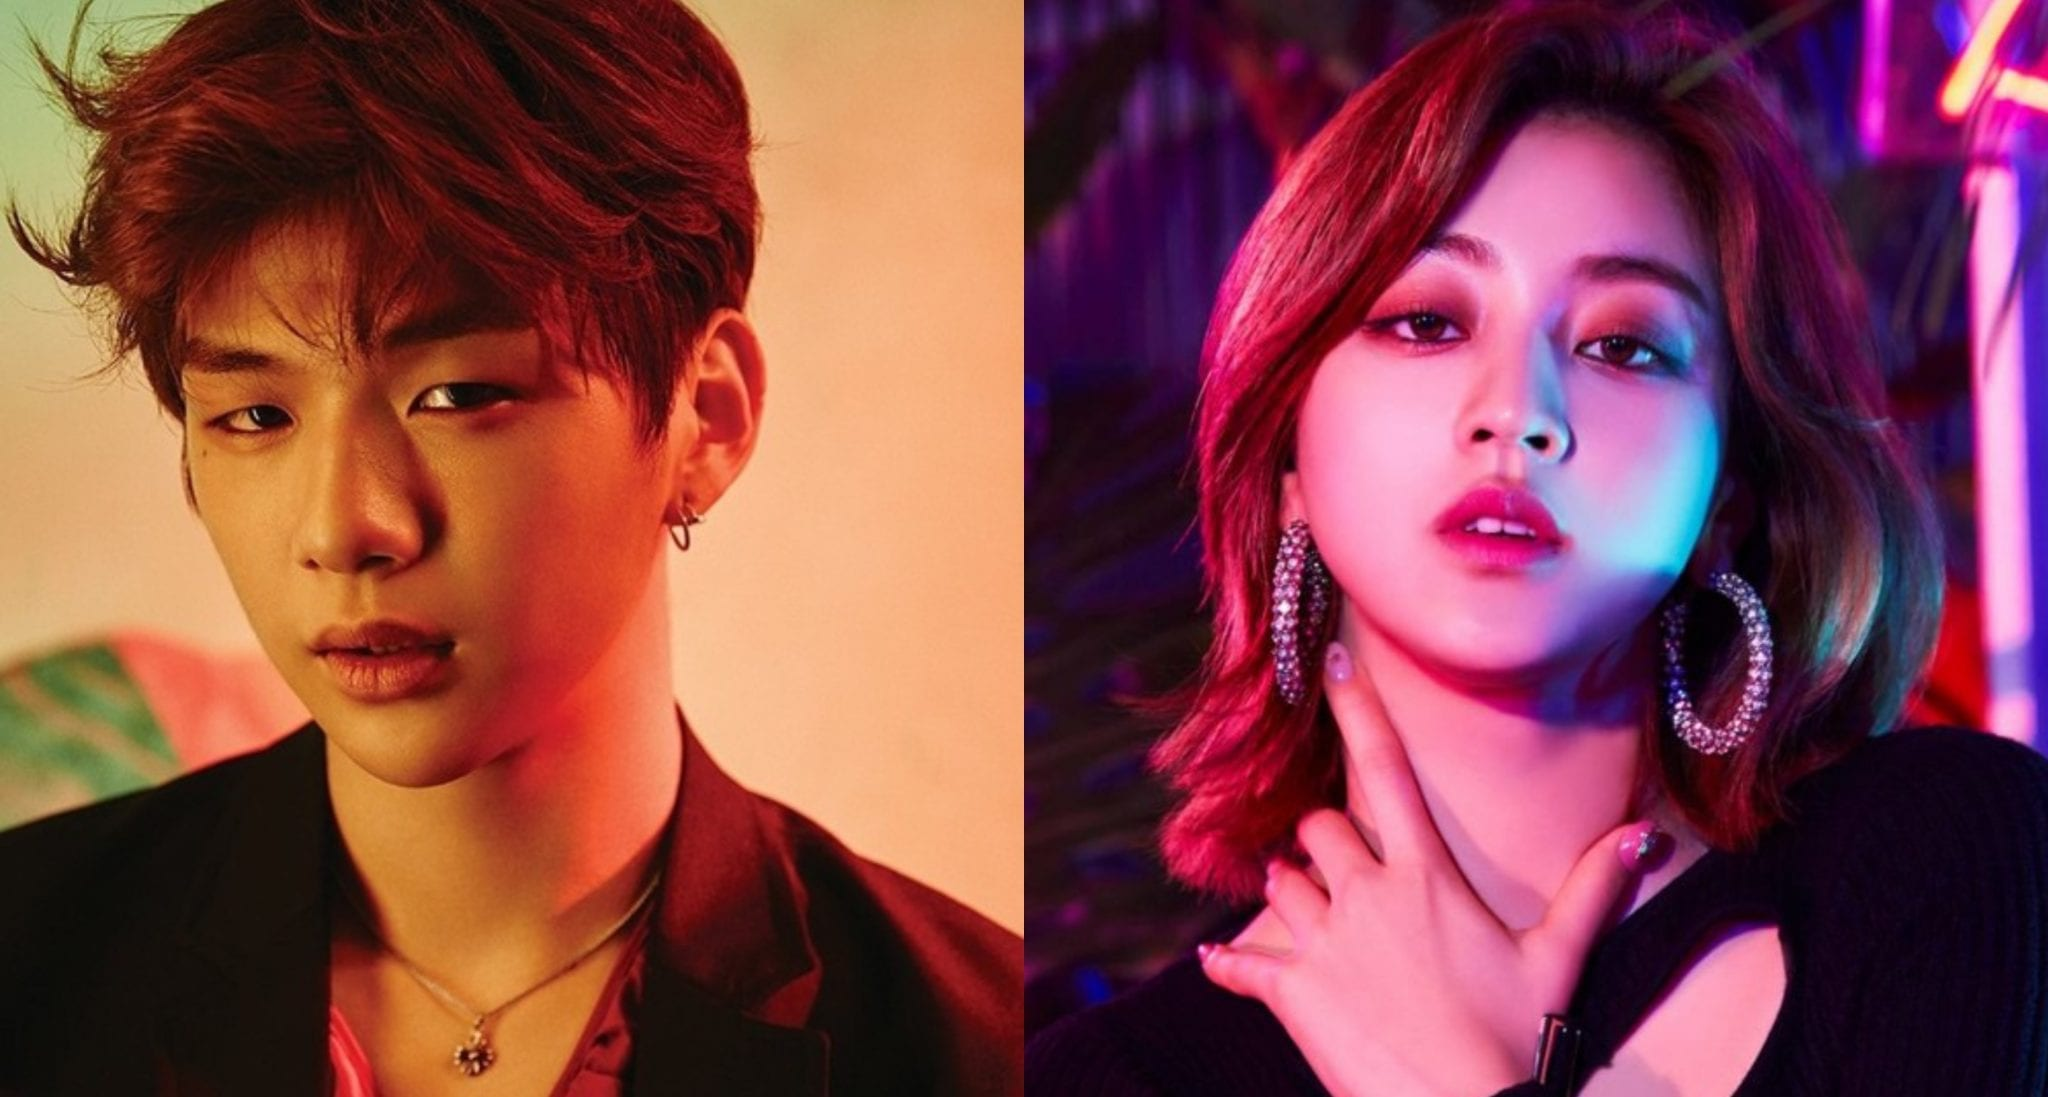 K-pop Idols Kang Daniel And TWICE's Jihyo Confirmed To Be Dating